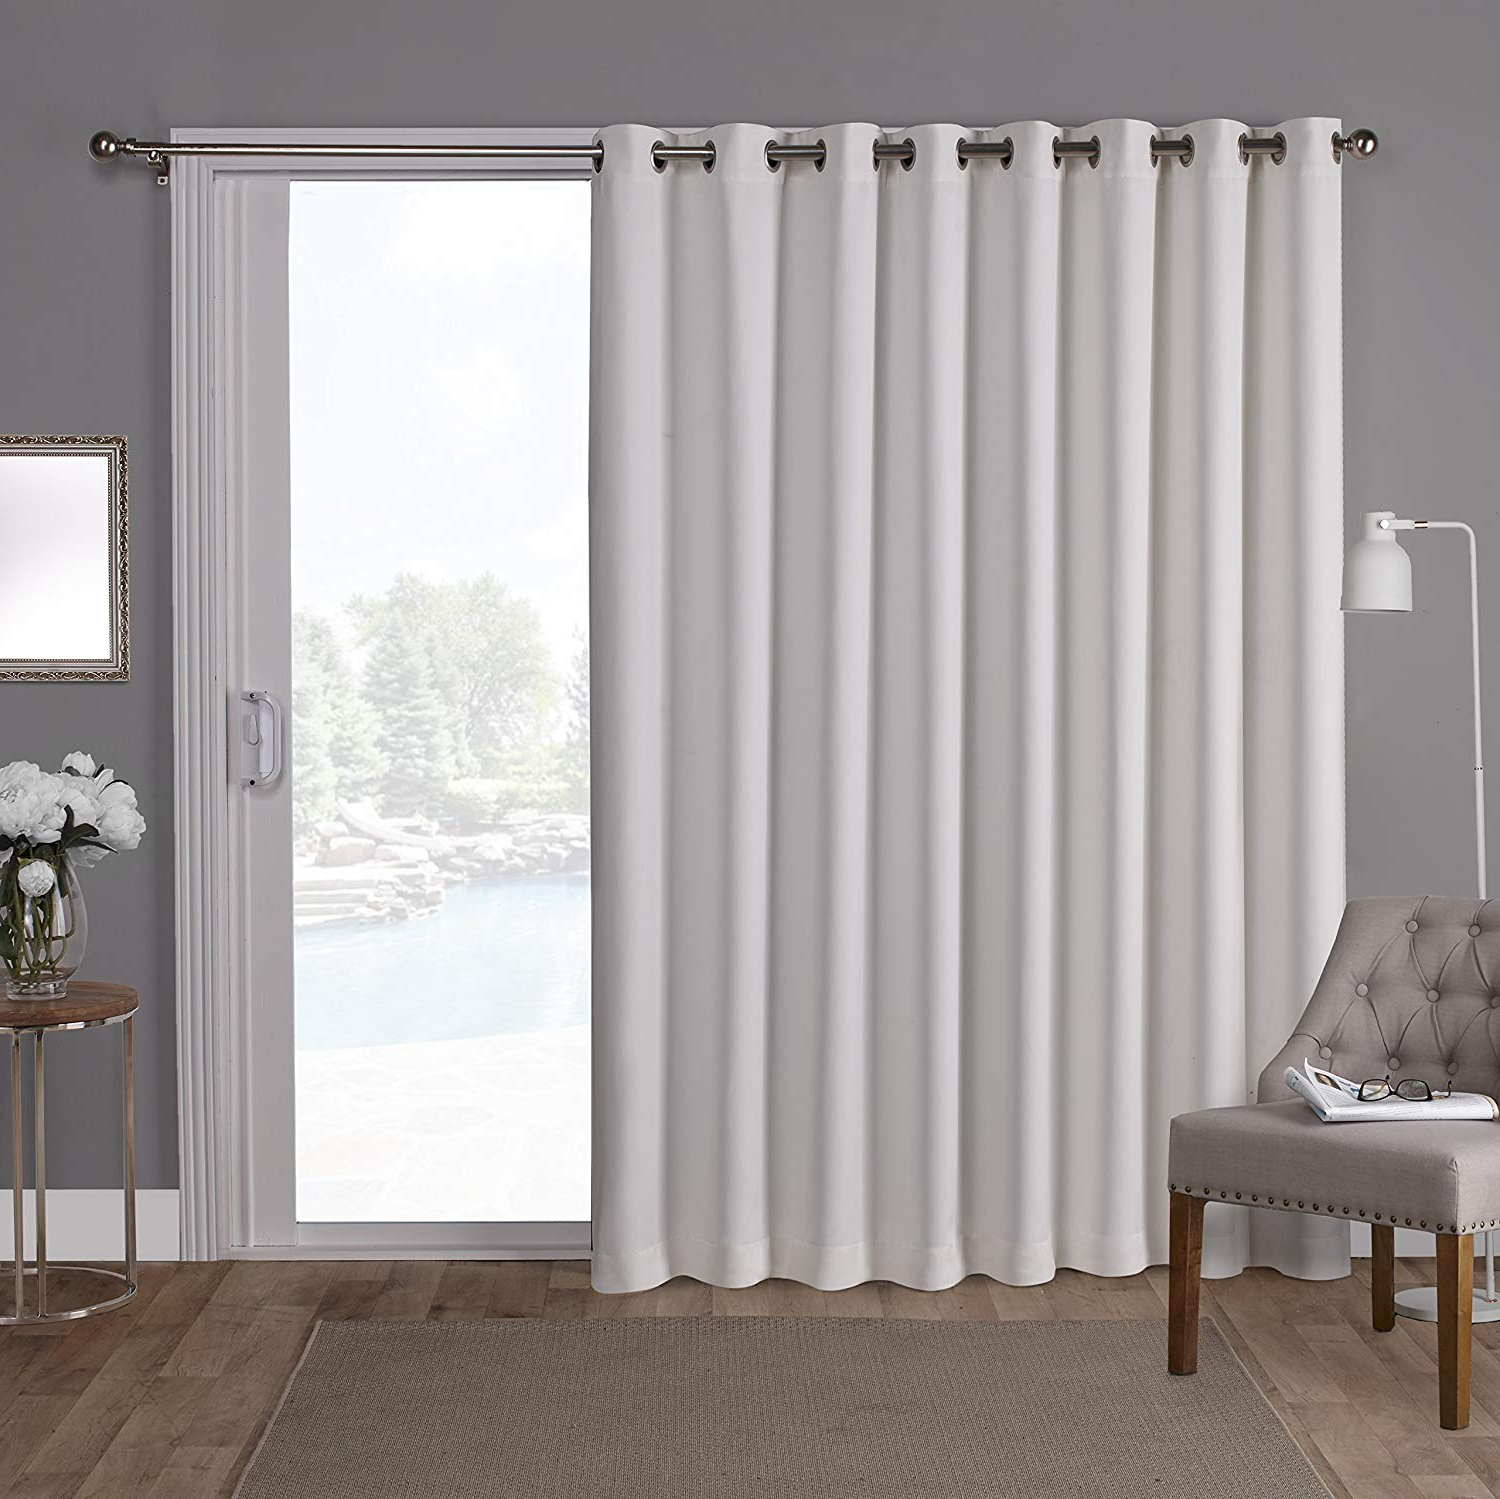 Exclusive Home Sateen Patio Woven Blackout Grommet Top Single Curtain  Panel, Vanilla, 100X84 In Trendy Oxford Sateen Woven Blackout Grommet Top Curtain Panel Pairs (Gallery 18 of 20)